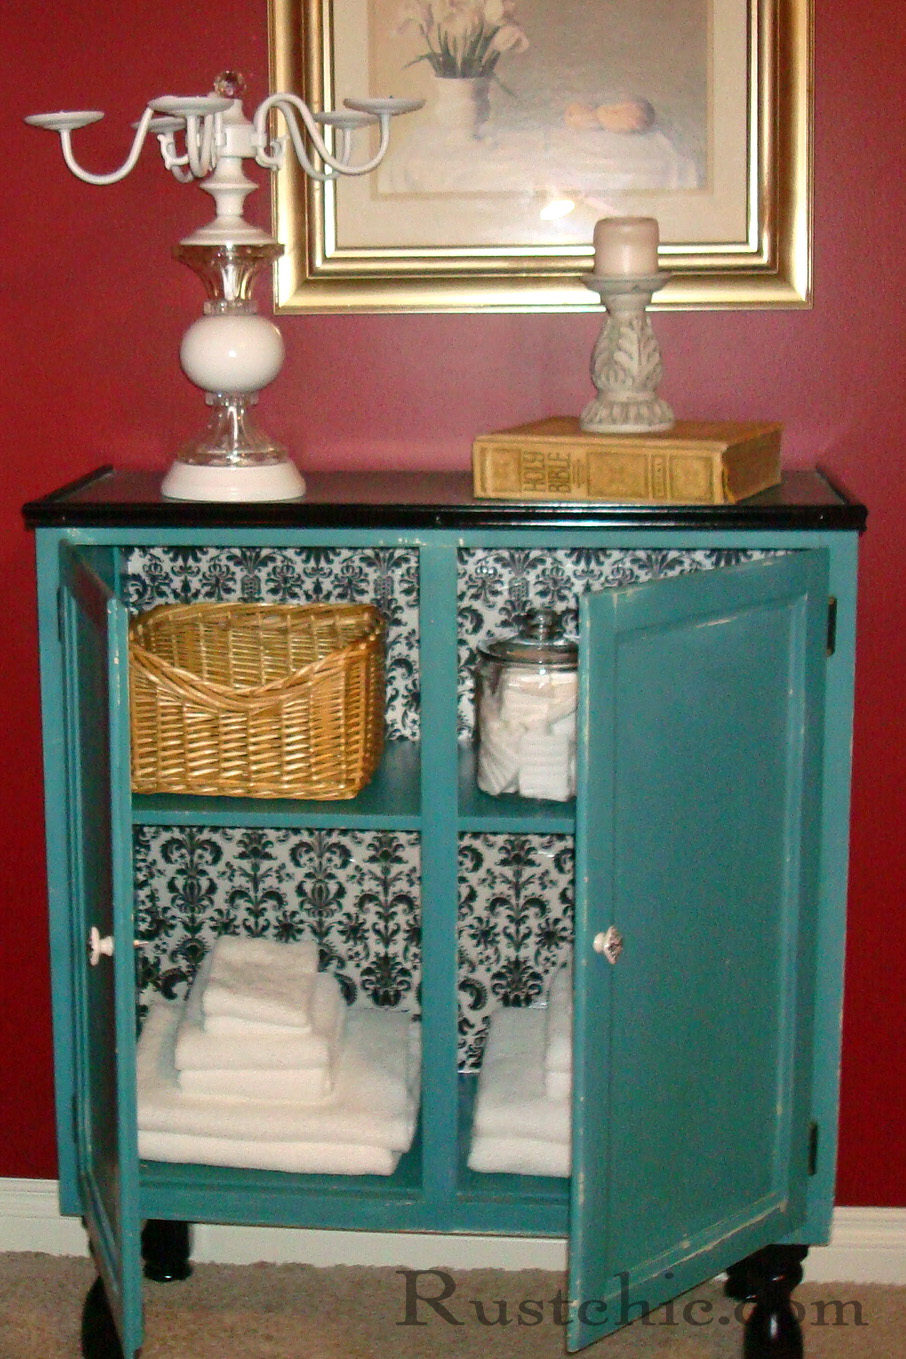 Rustchic: Turquoise Cabinet